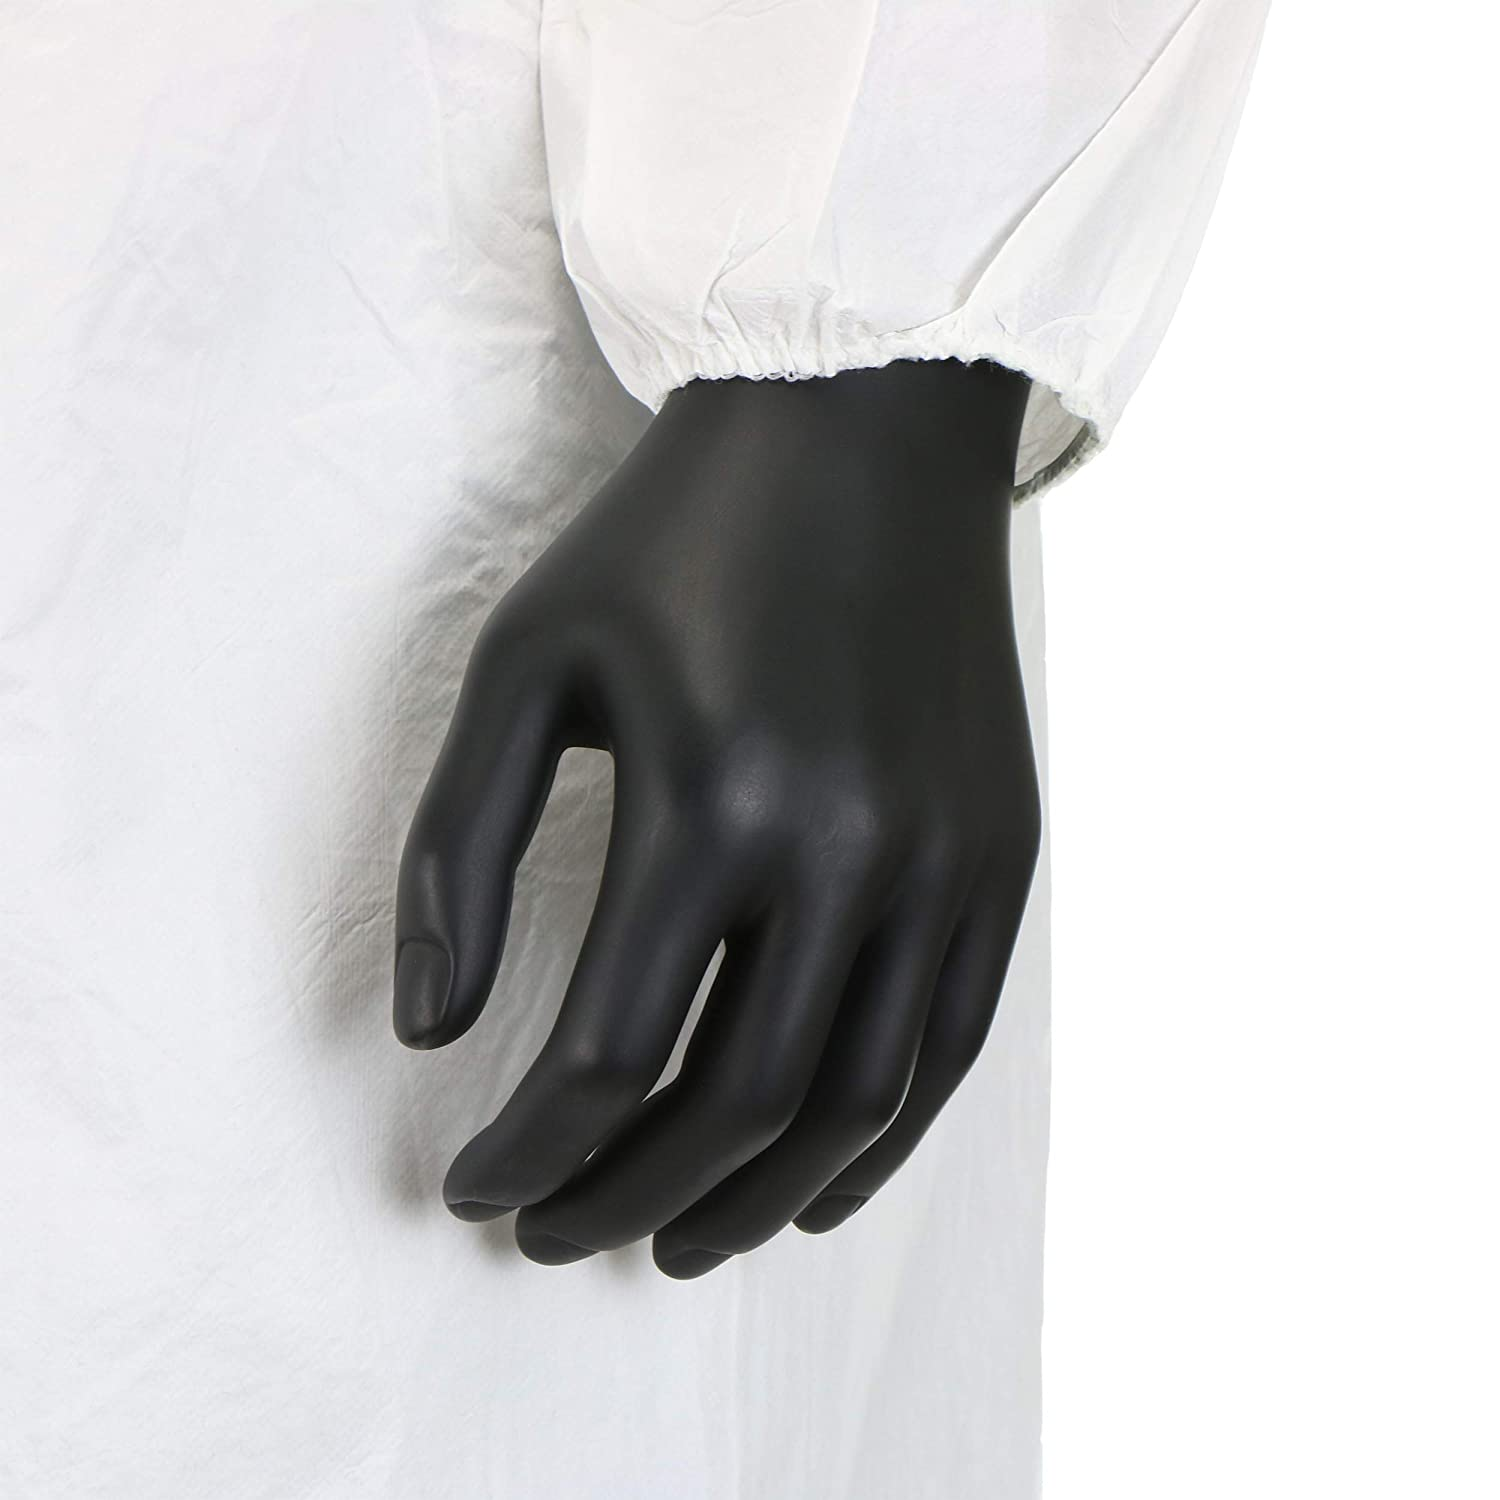 2XL White Elastic Wrist and Ankle West Chester 3602 2XL Polypropylene Posiba Coverall